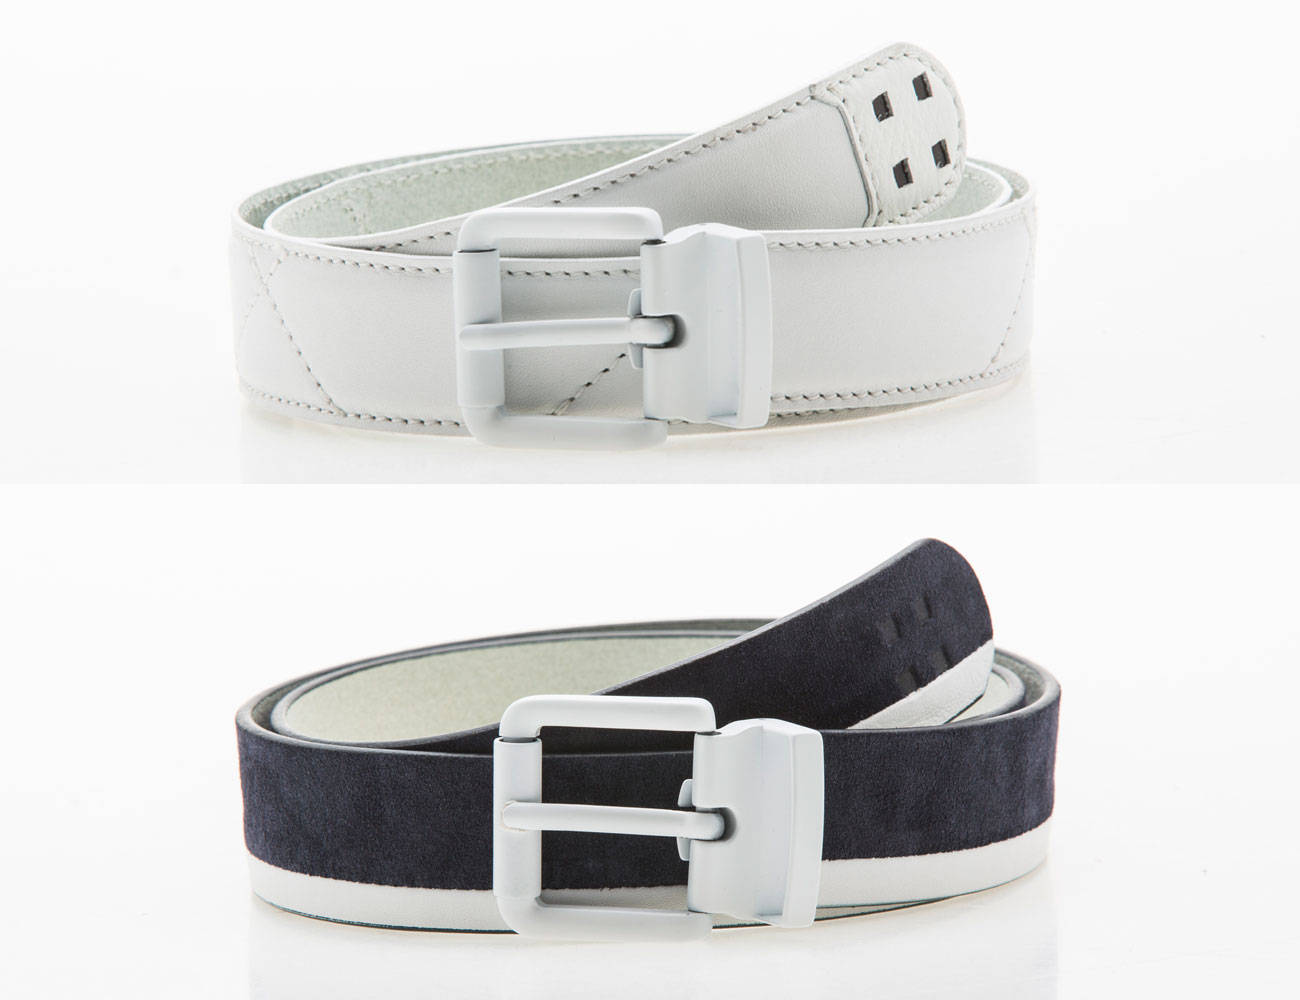 SNKRBLT – The World's First Belts To Match Your Sneakers